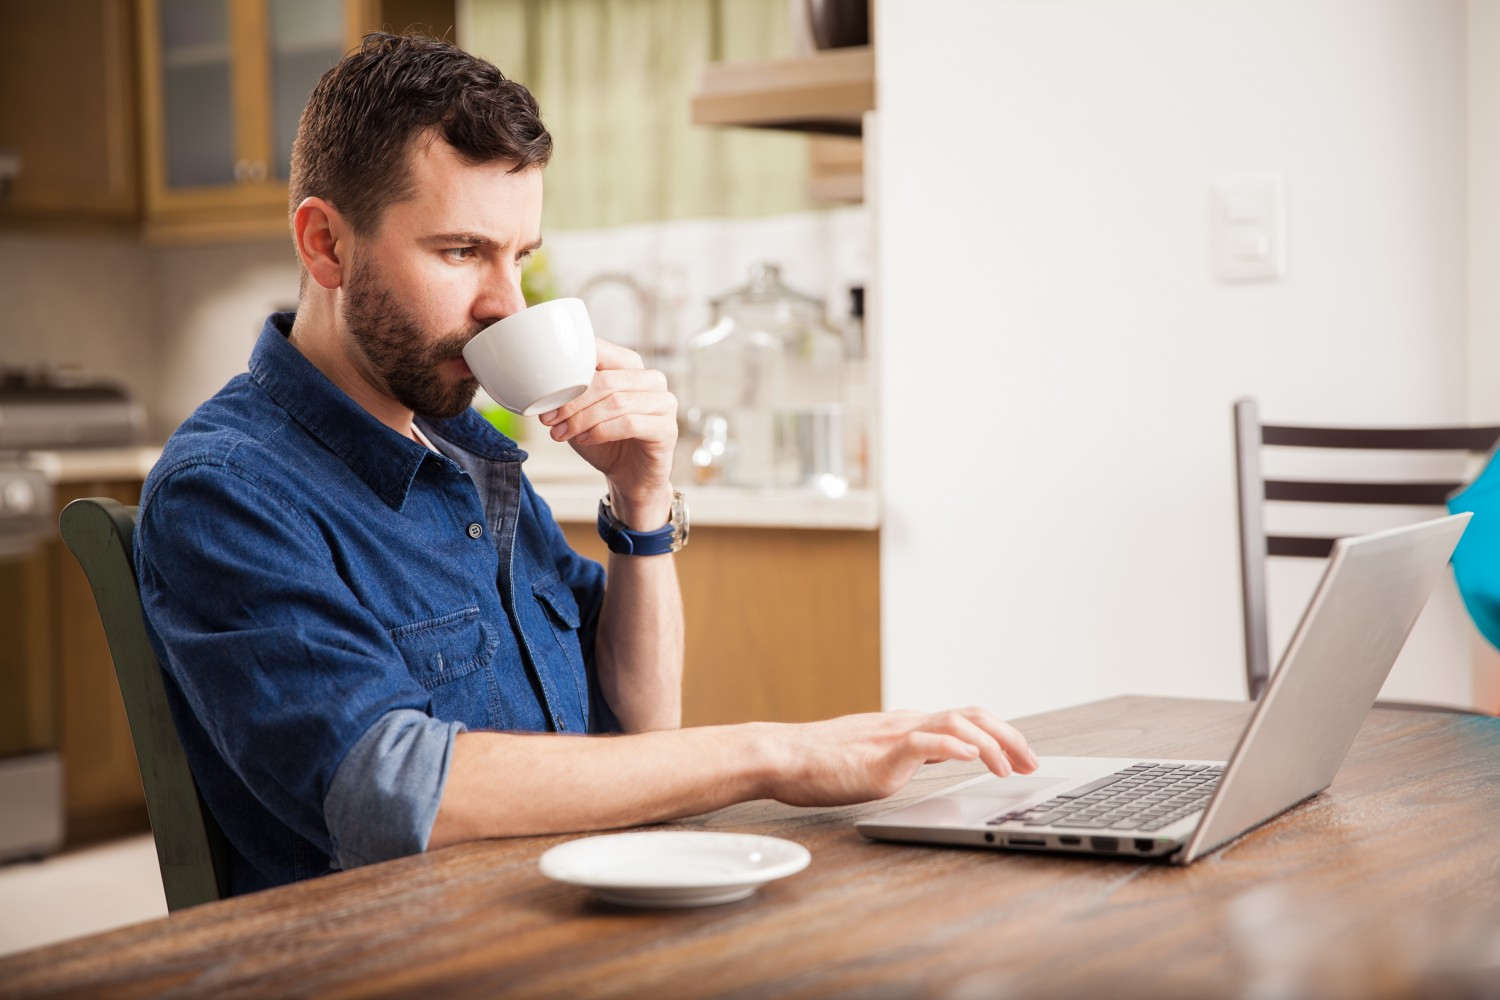 20 Work From Home Jobs These 20 Companies Are Looking To Fill Part Time Work From Home Jobs